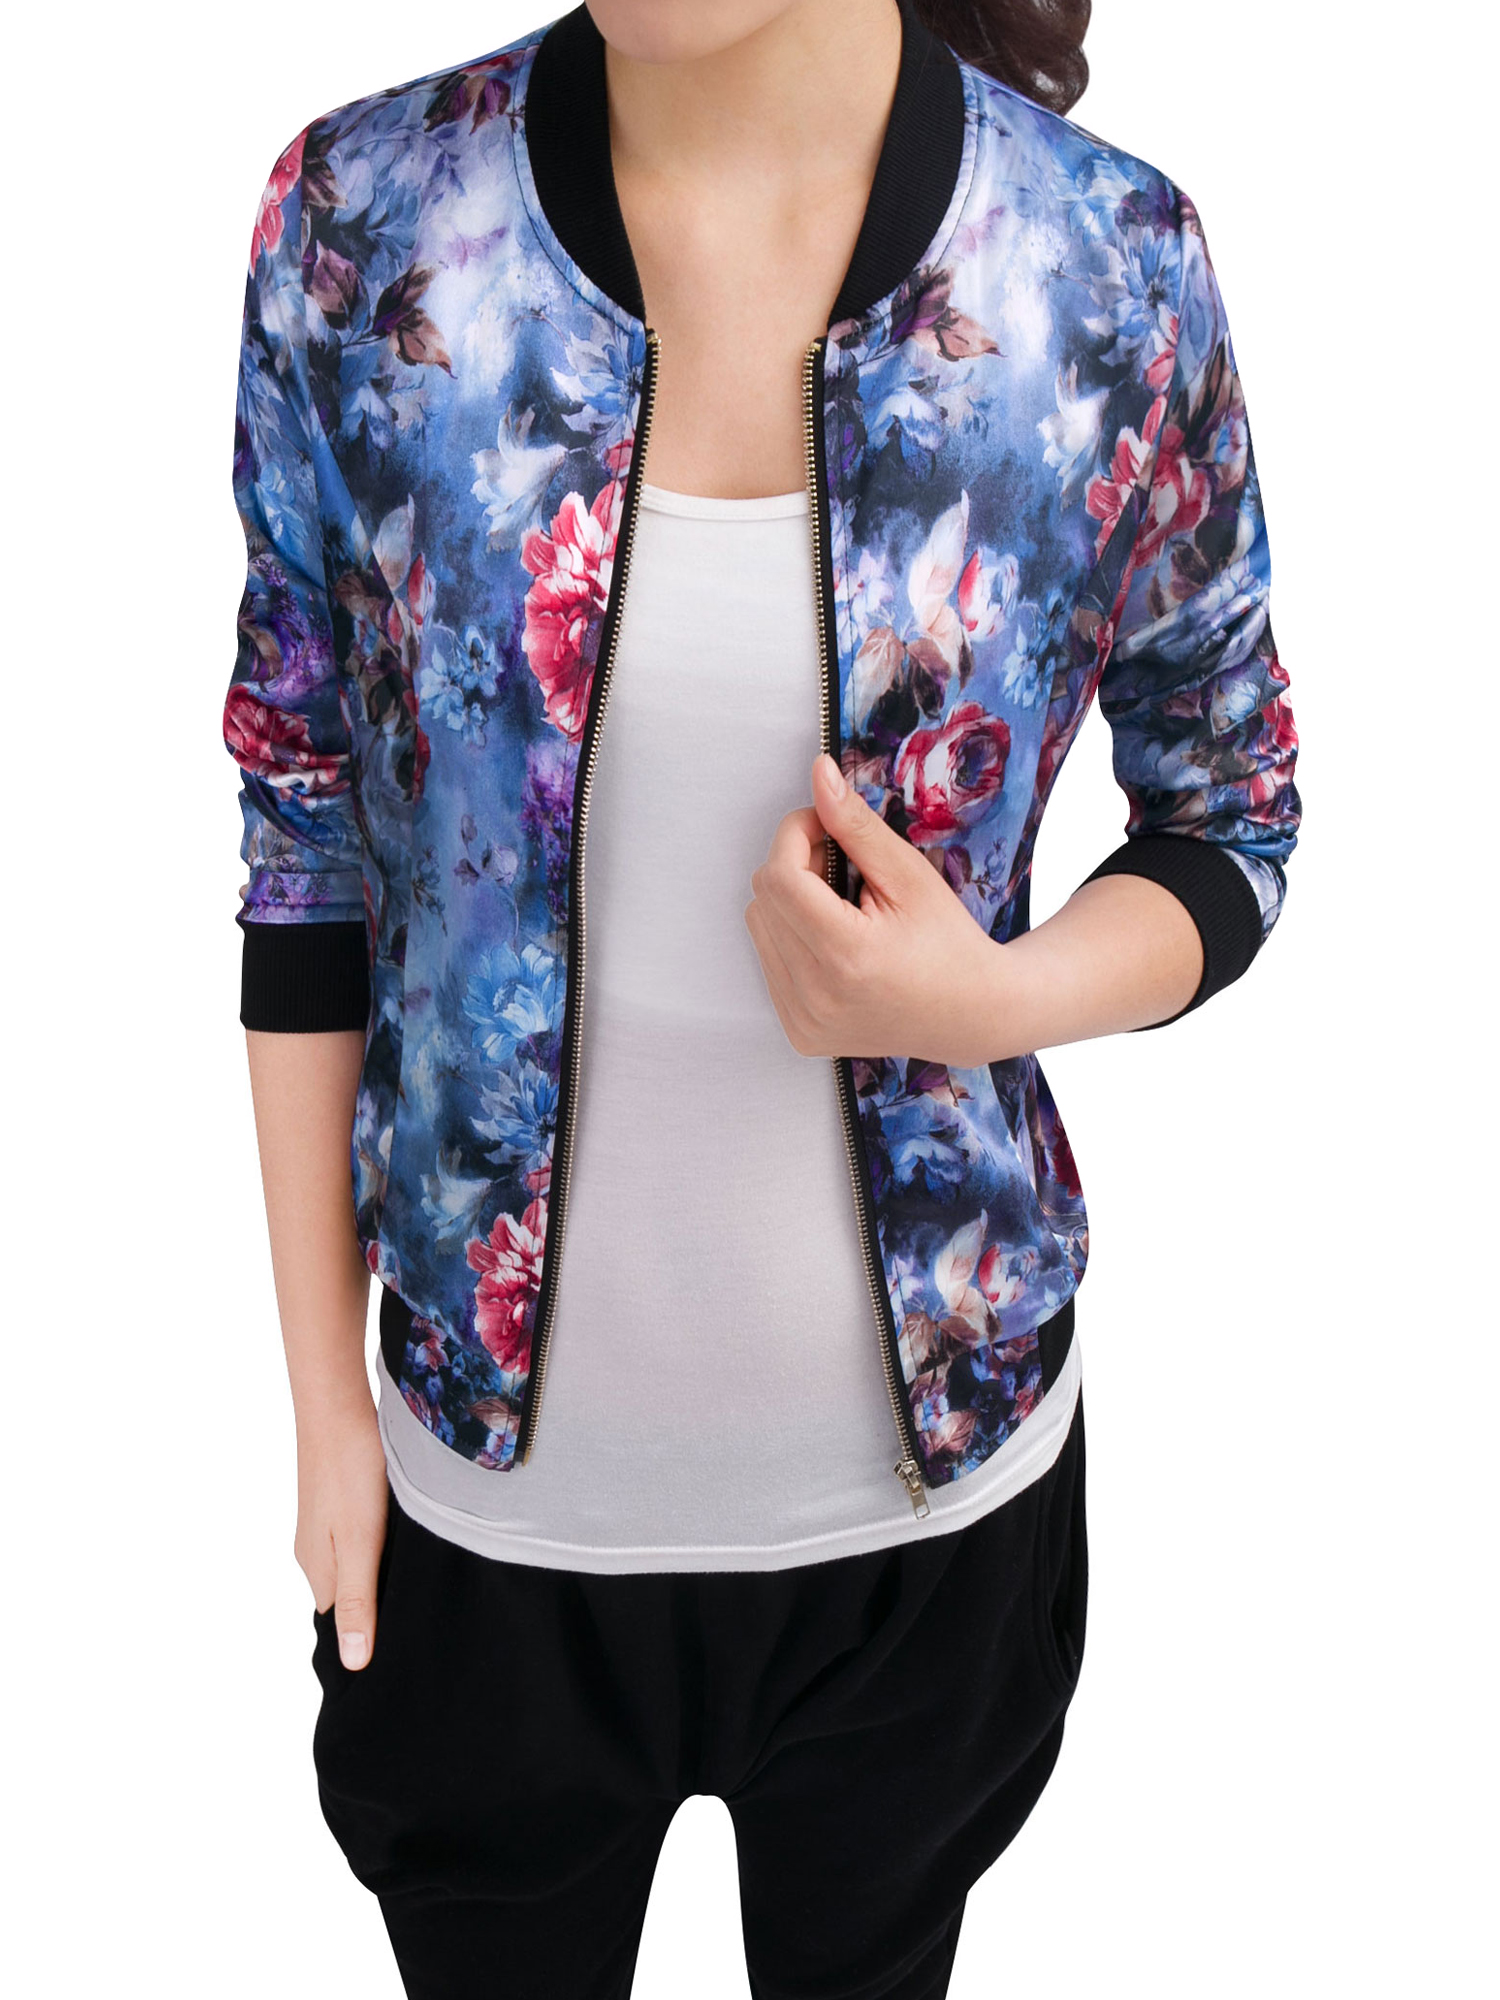 Women Ribbed Cuffs Zipper Fly Flower Print Stylish Jacket Blue M